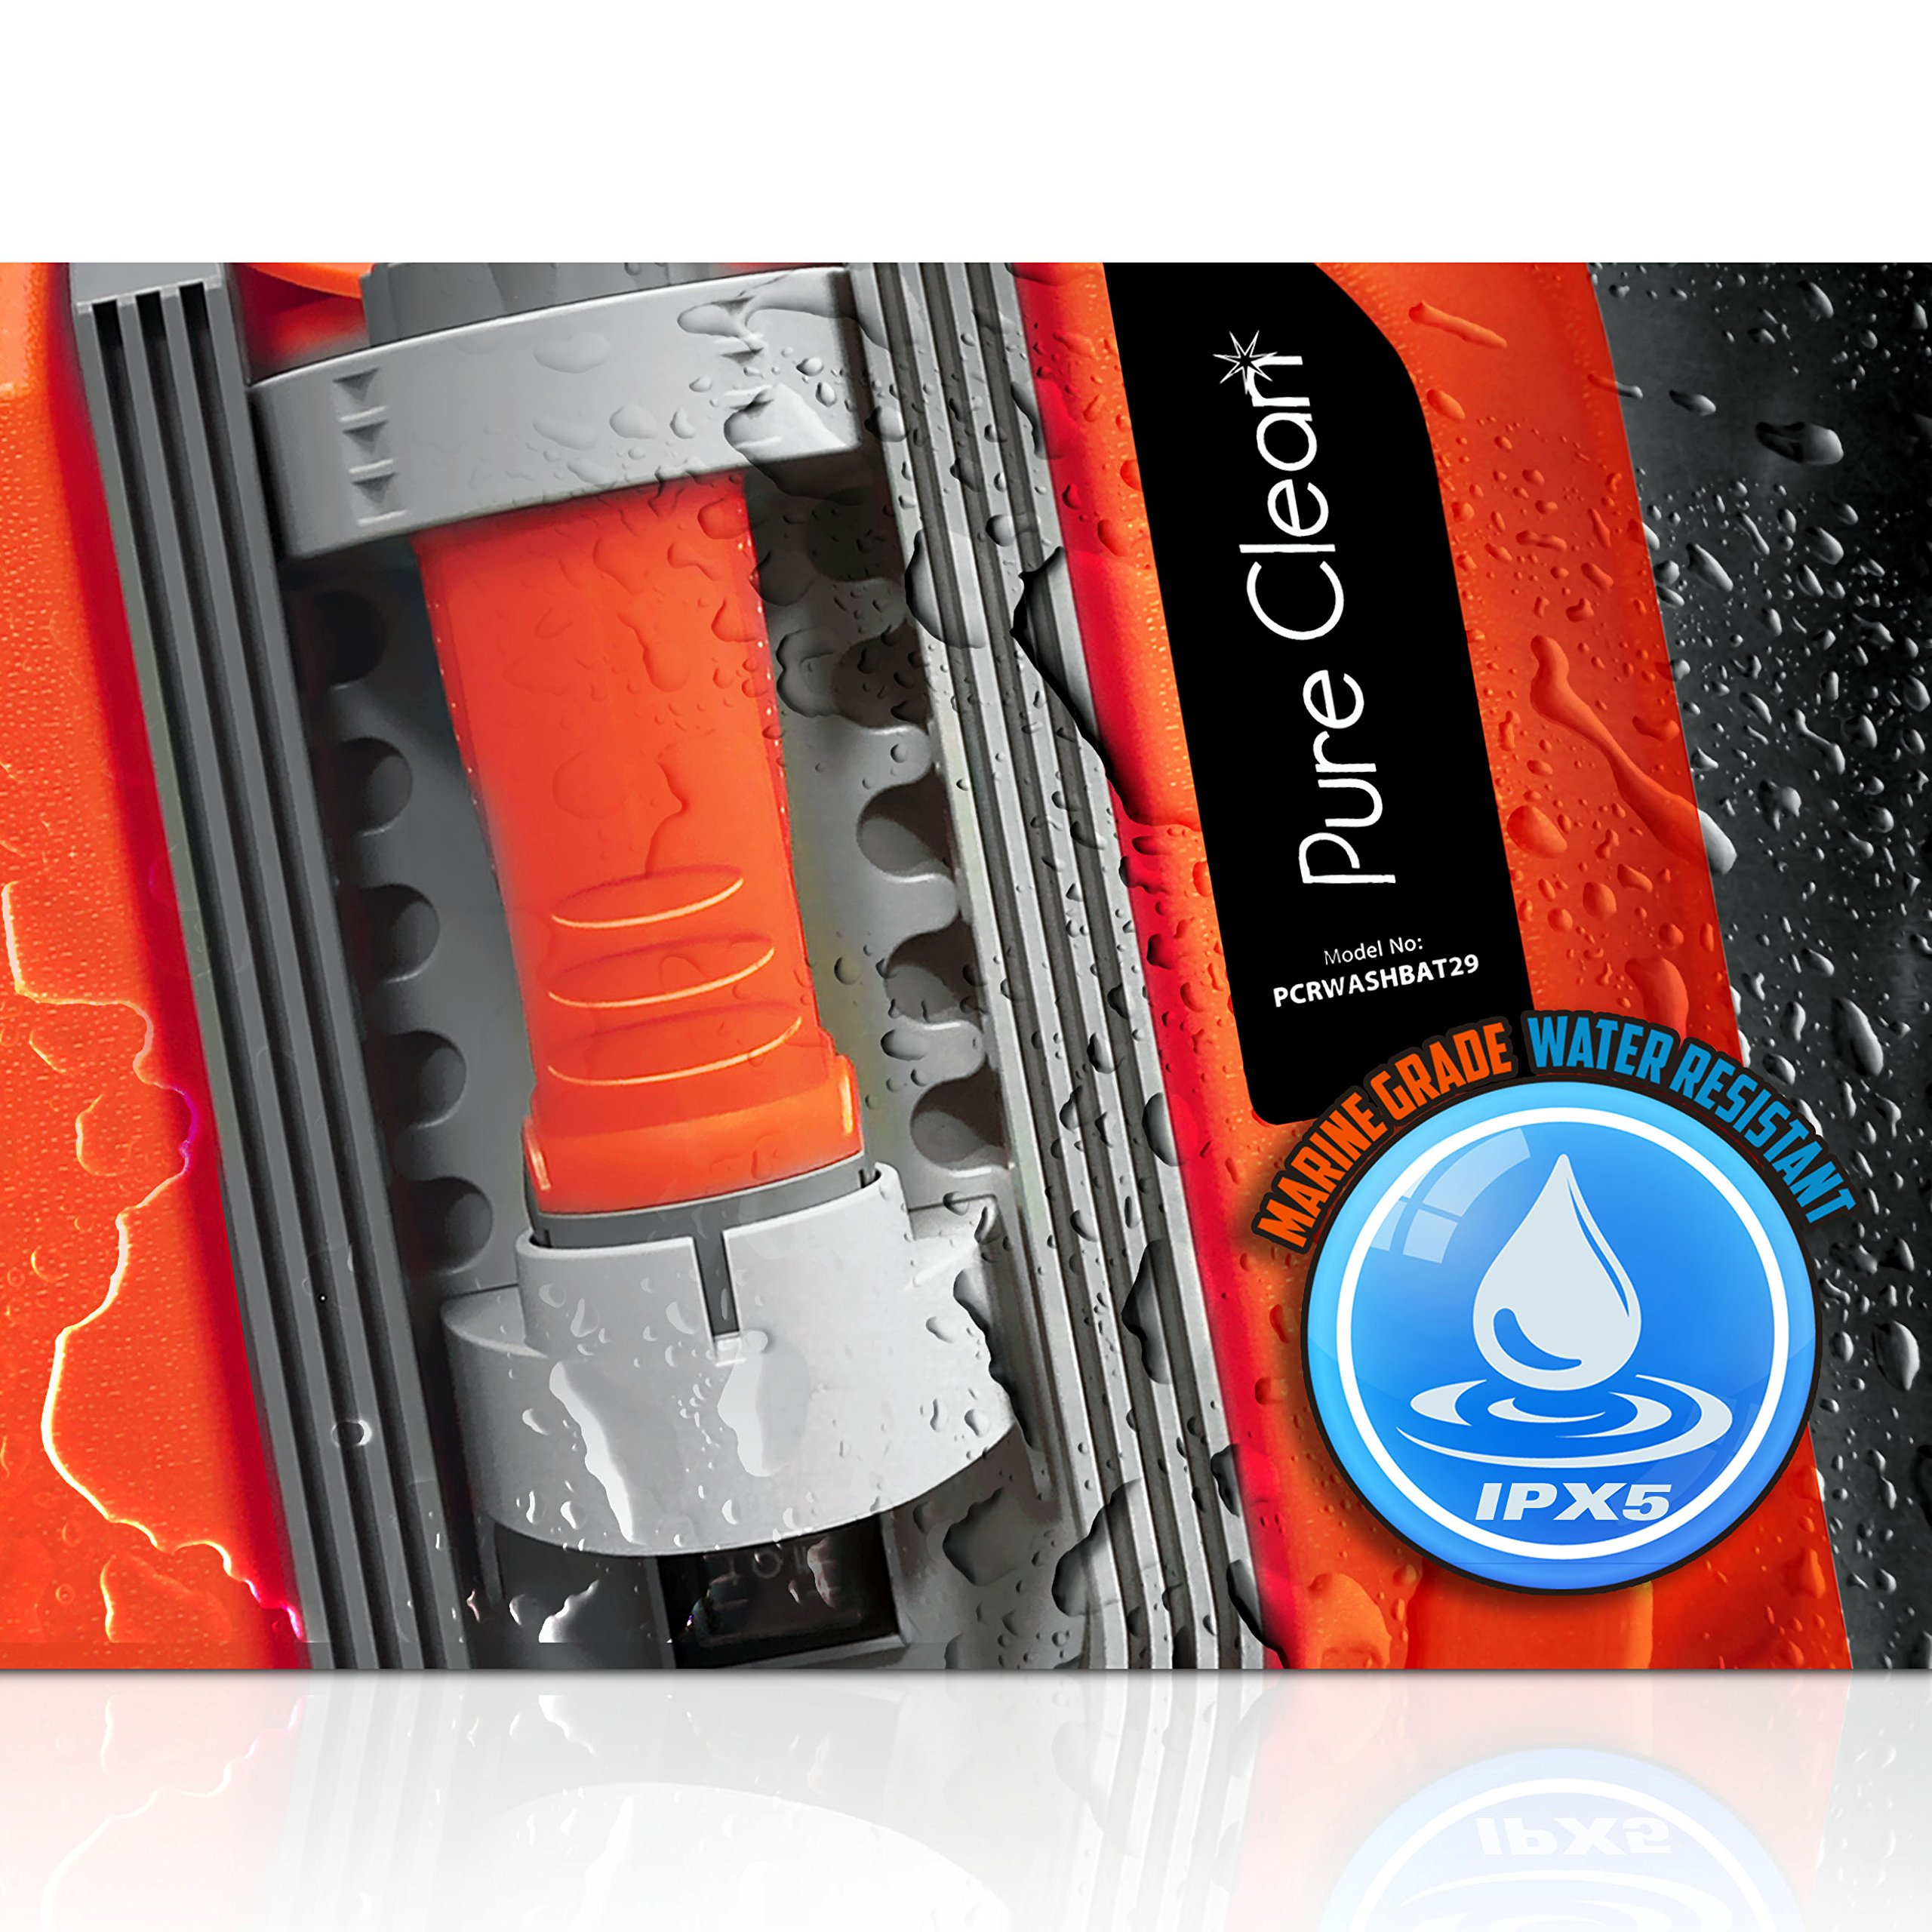 Pure Clean PCRWASHBAT29 portable spray washer W/ Flash Light - Power bank - Carrying Wheels by Pure Clean (Image #5)